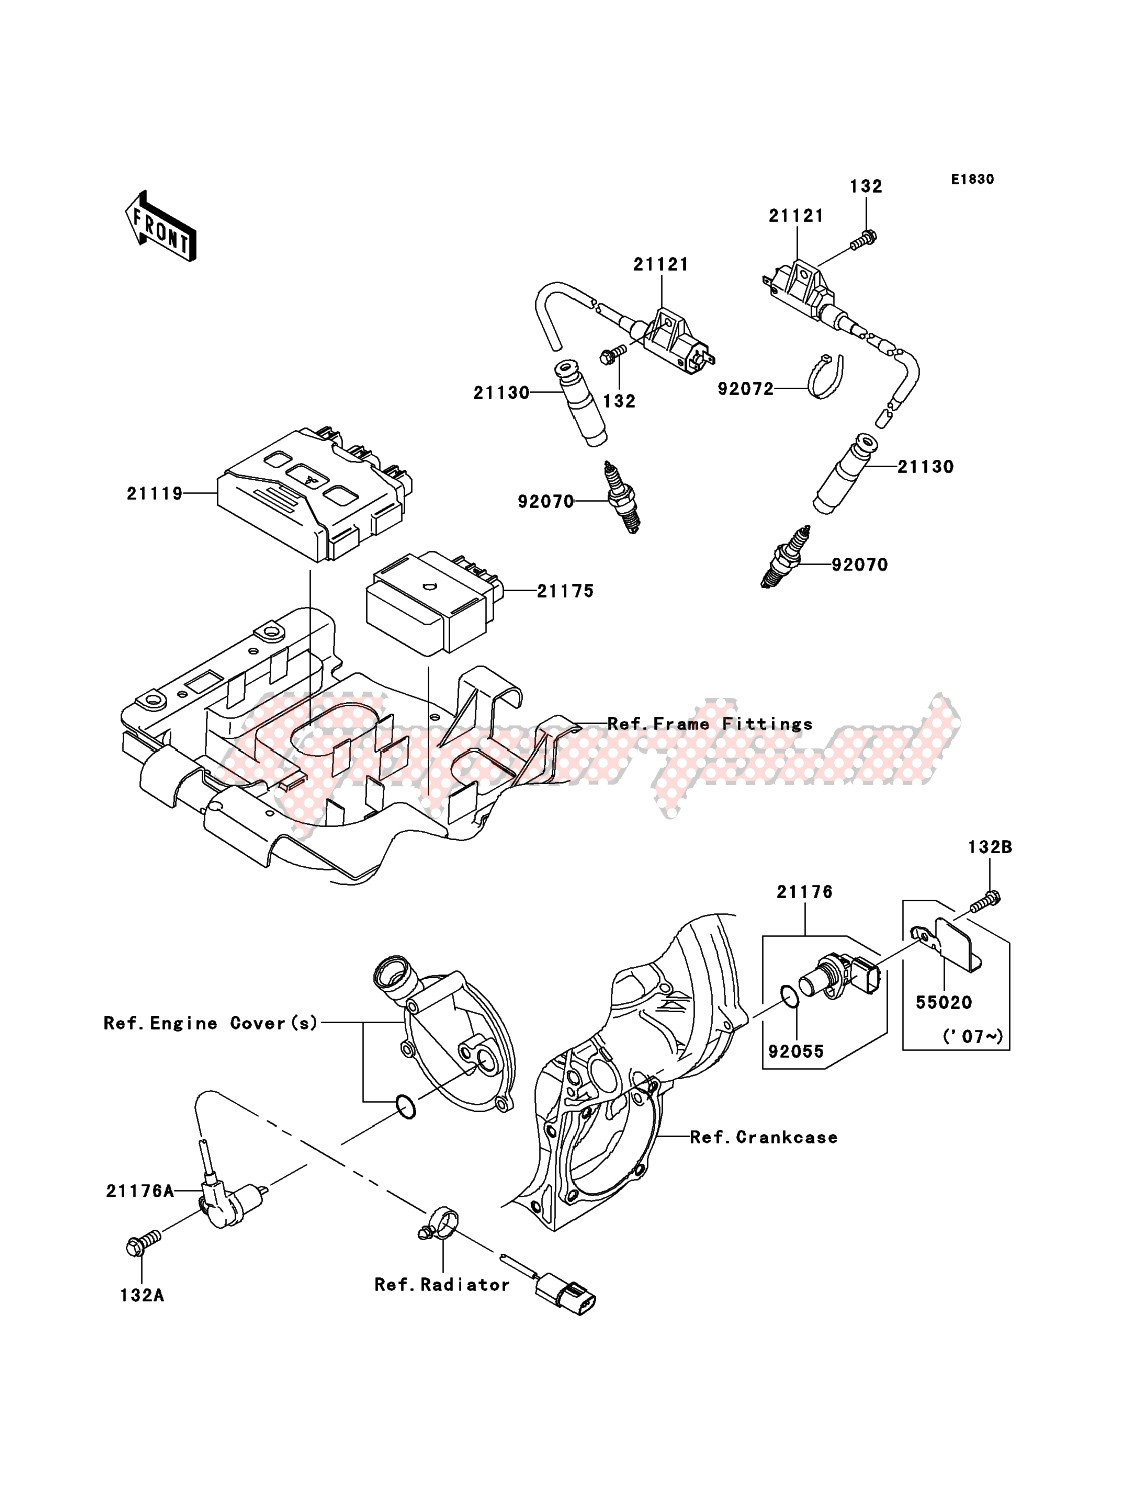 Ignition System image